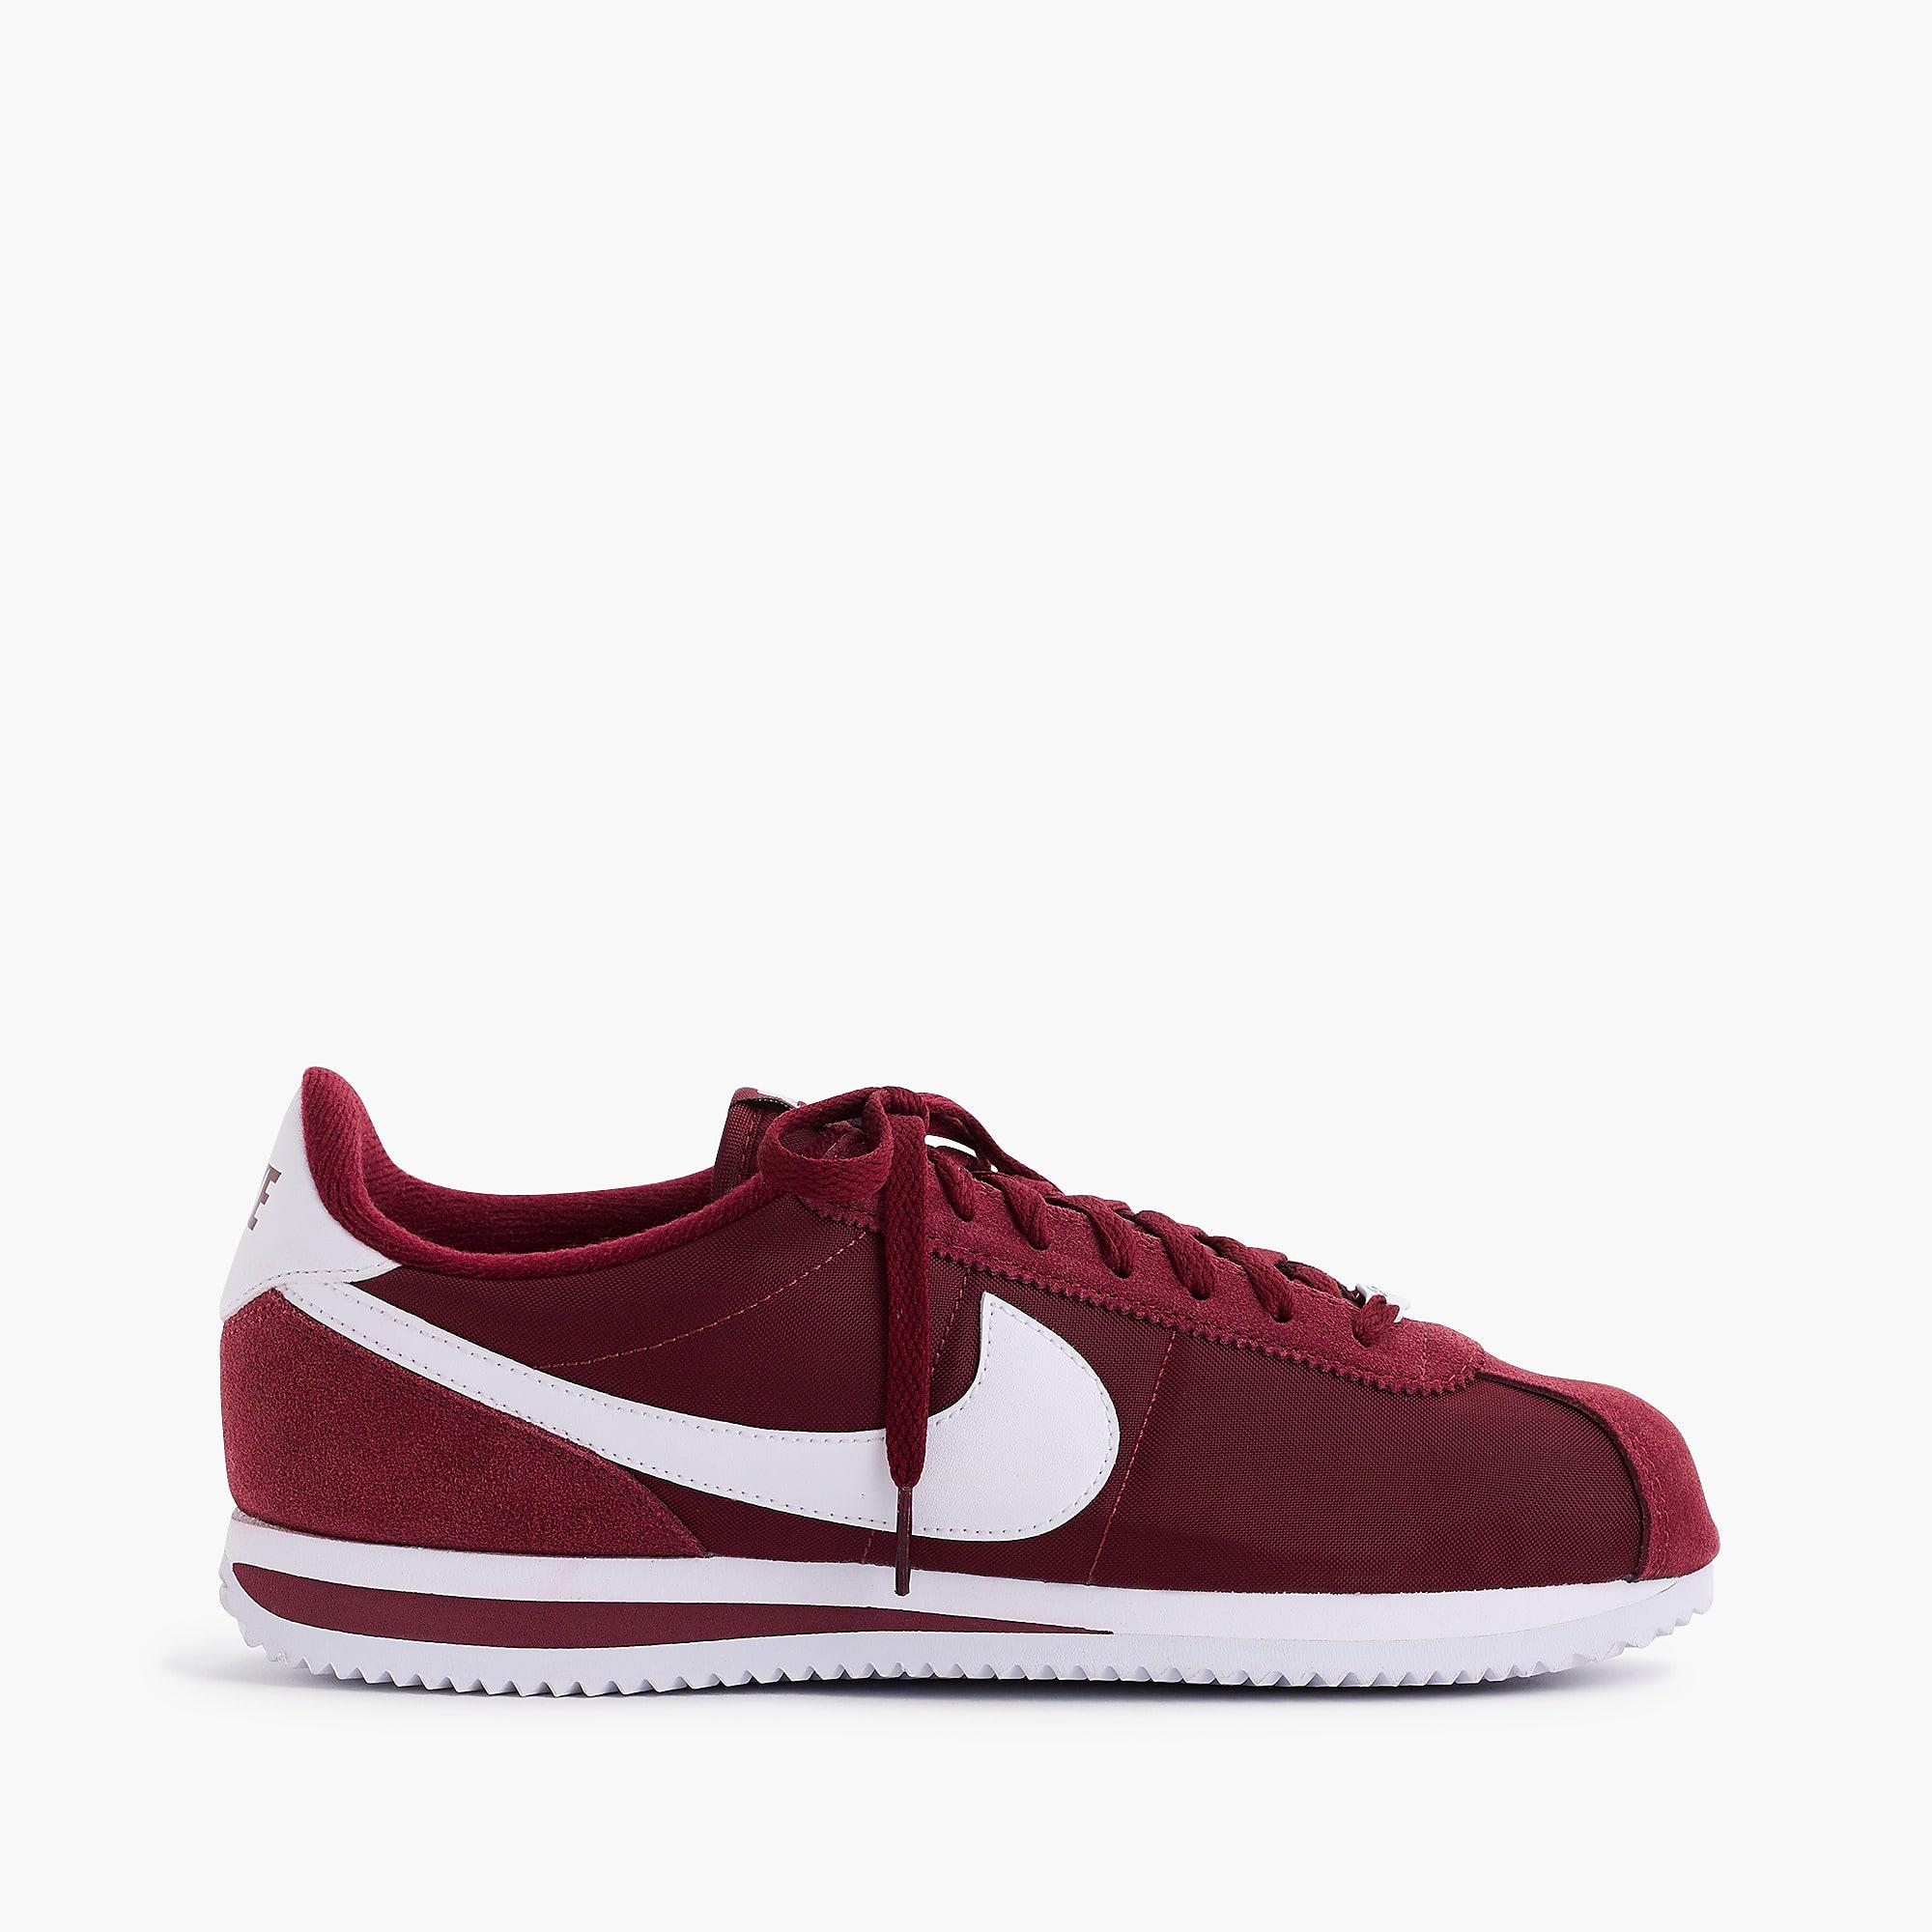 newest 6238c 87713 Lyst - Nike Cortez Sneakers In Nylon in White for Men